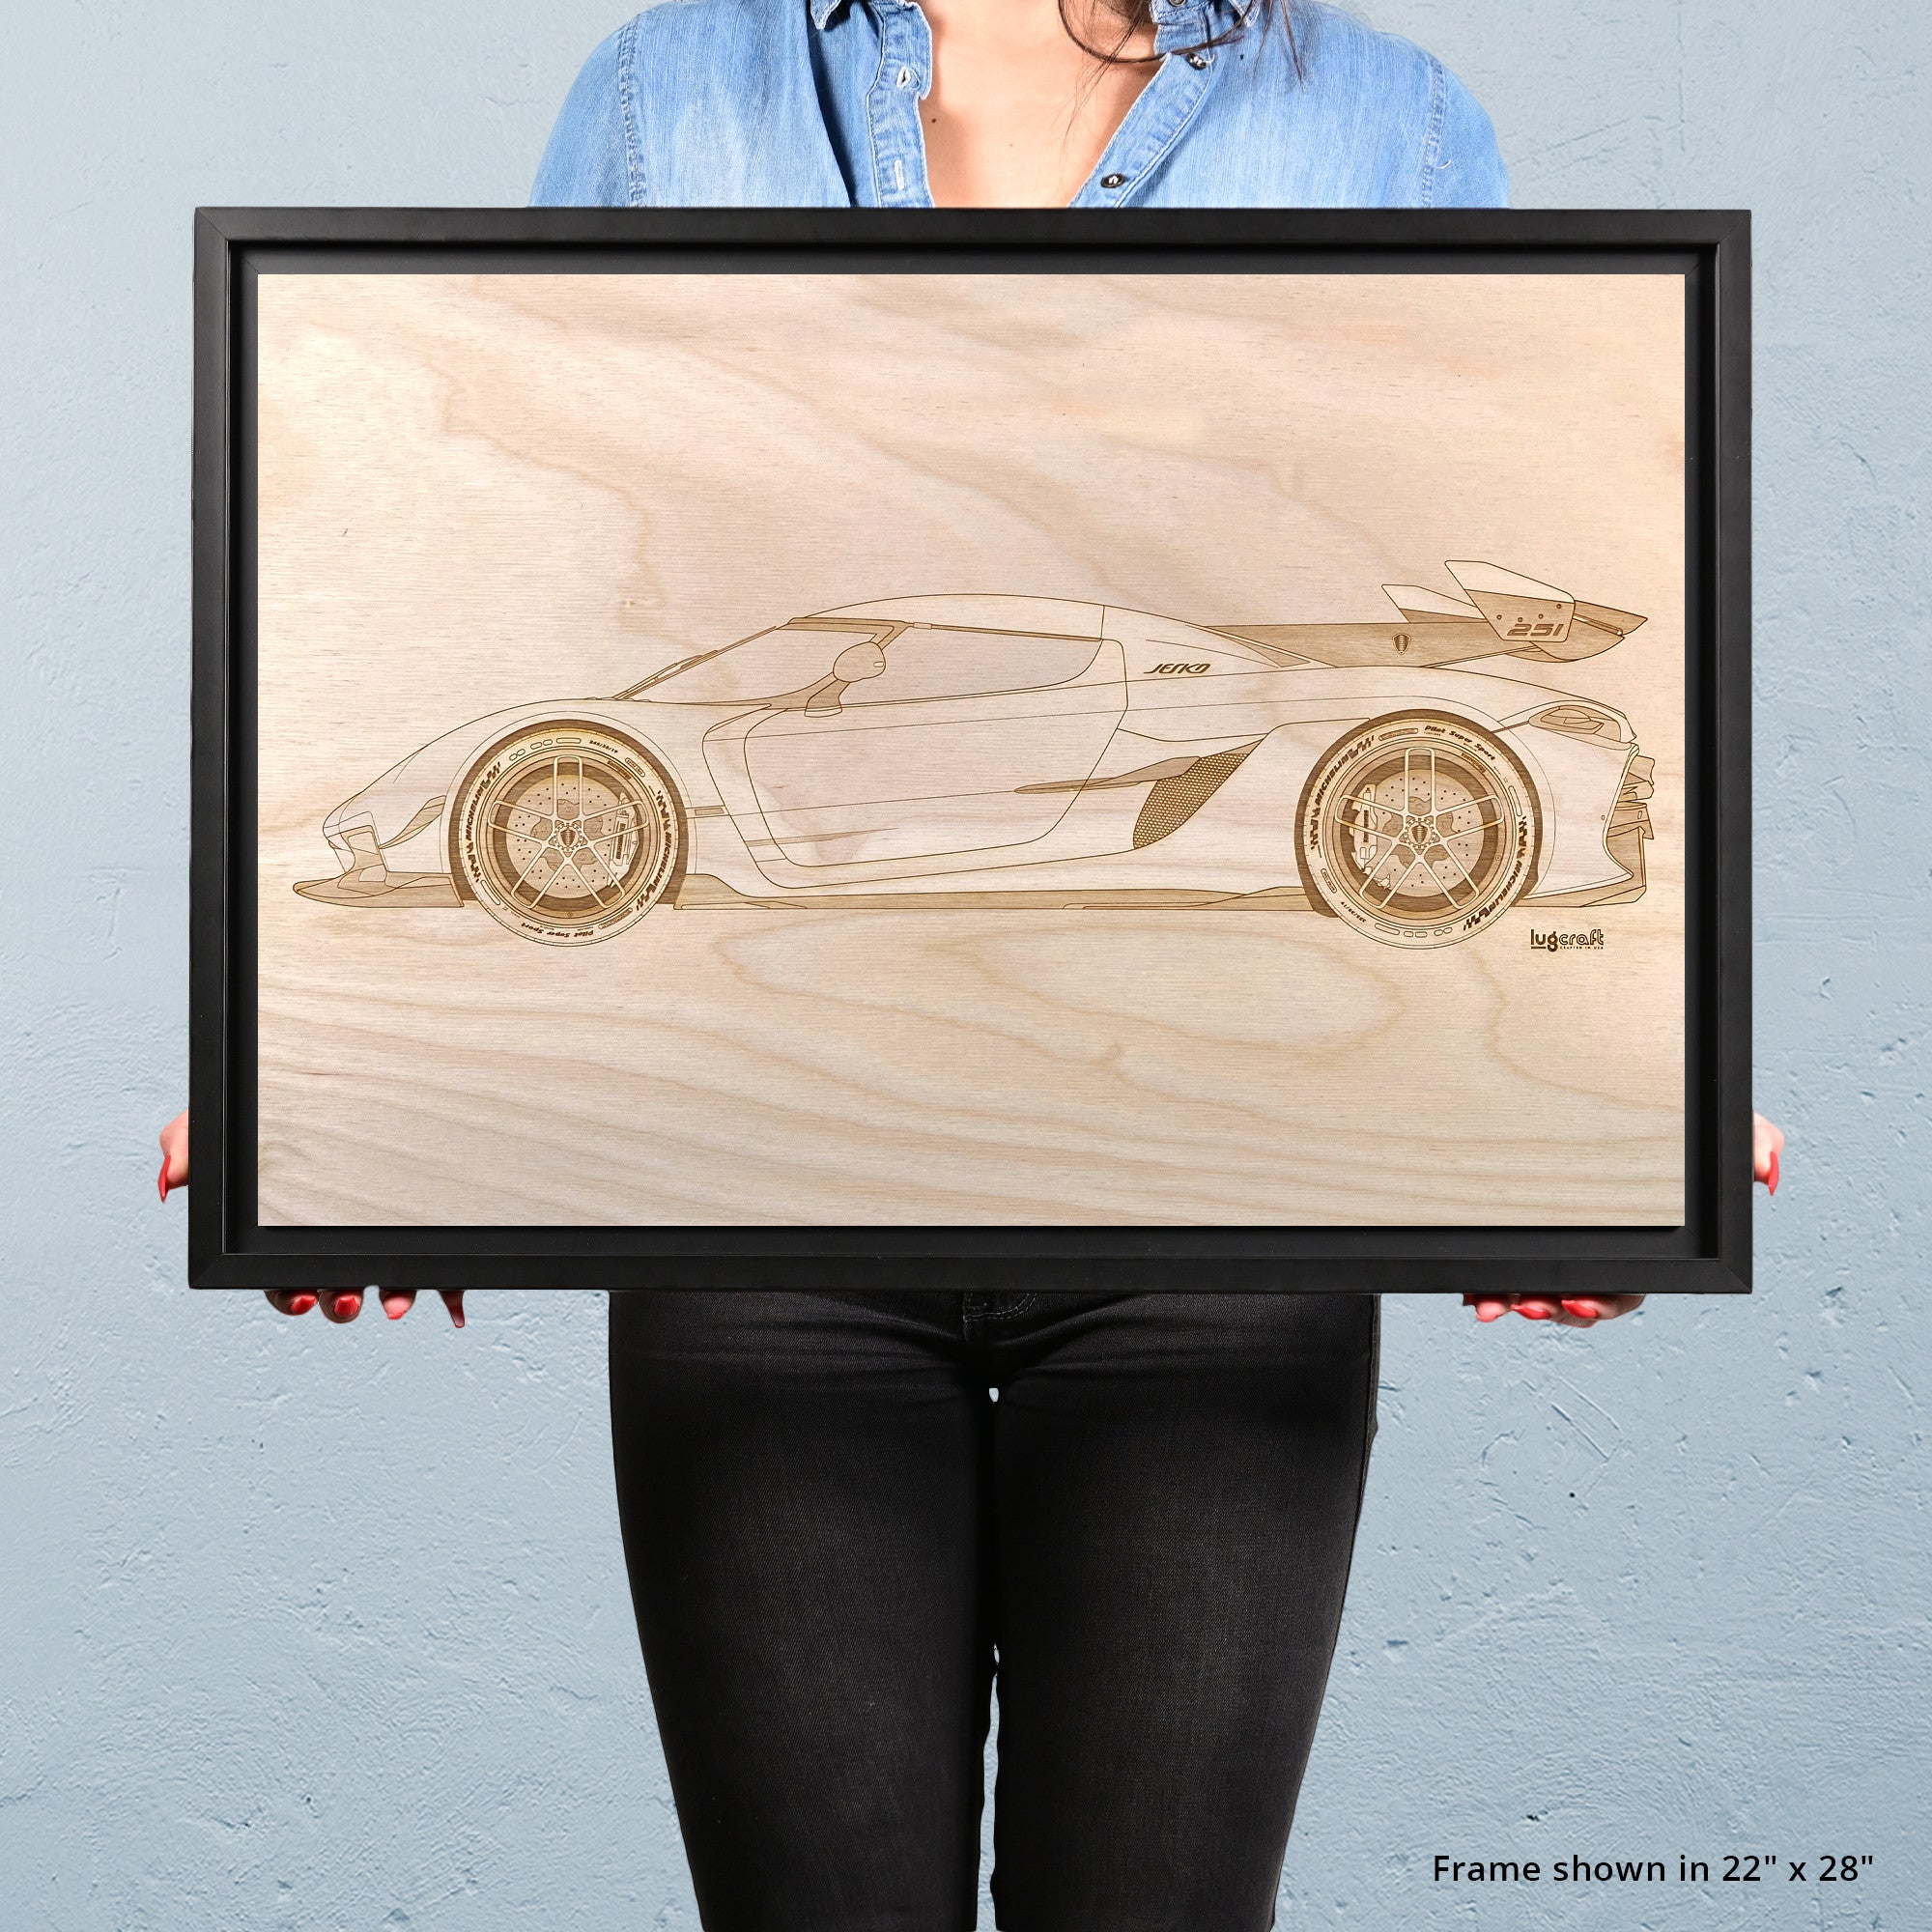 Koenigsegg Jesko Framed Wood Engraved Artwork